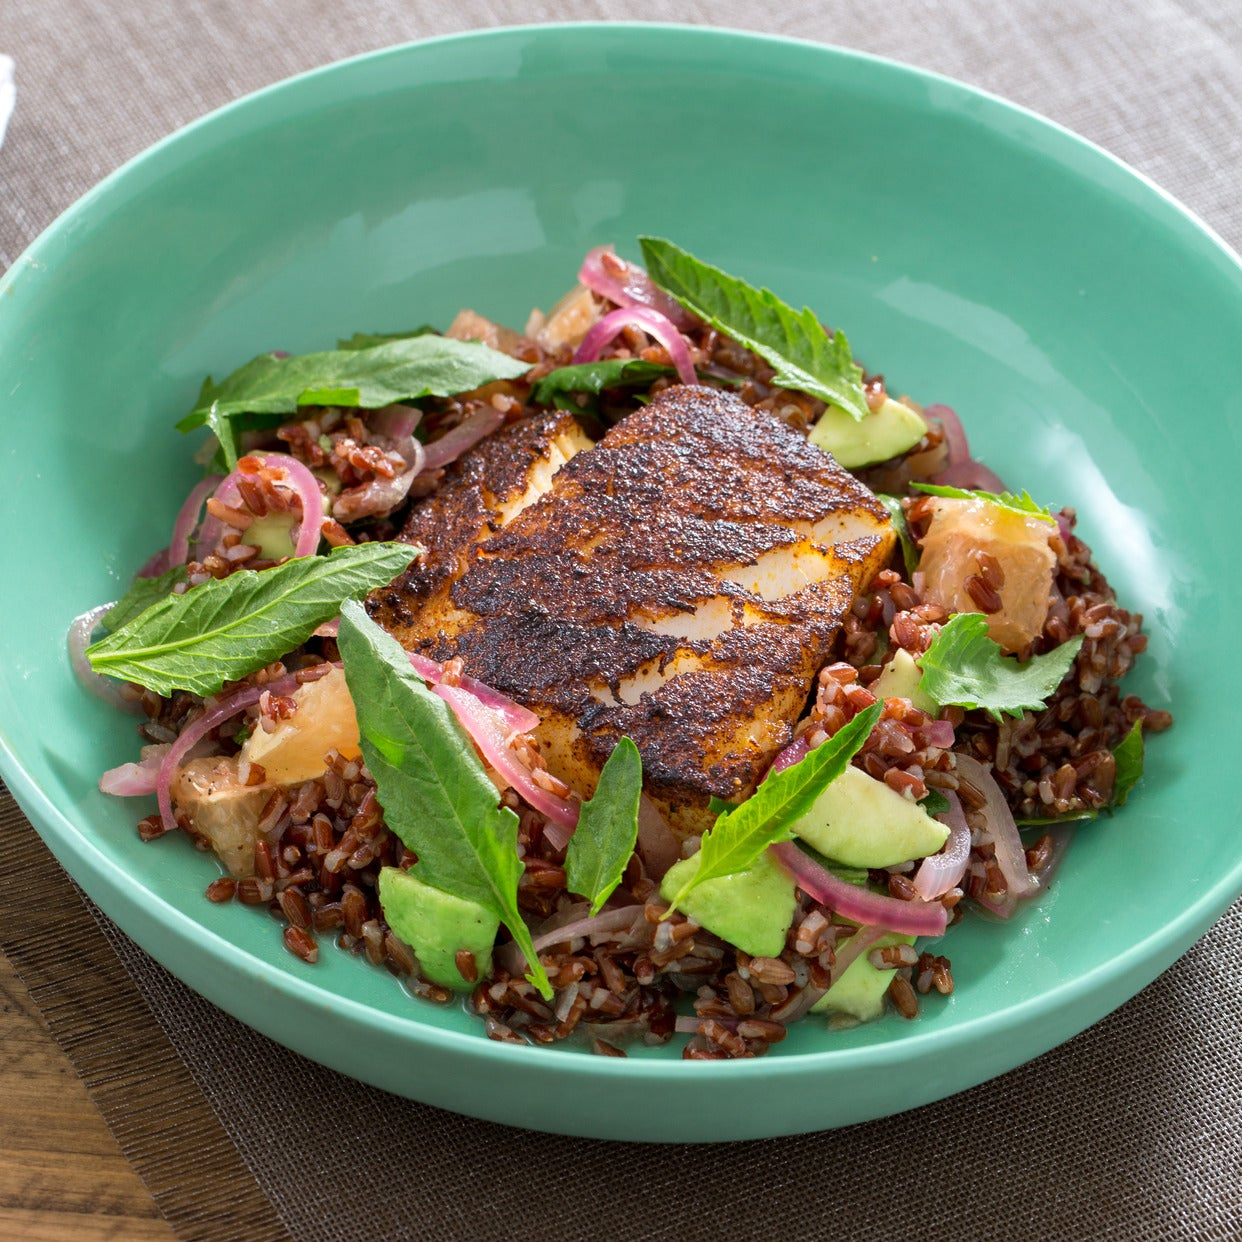 Chile-Blackened Cod with Epazote, Avocado & Red Rice Salad